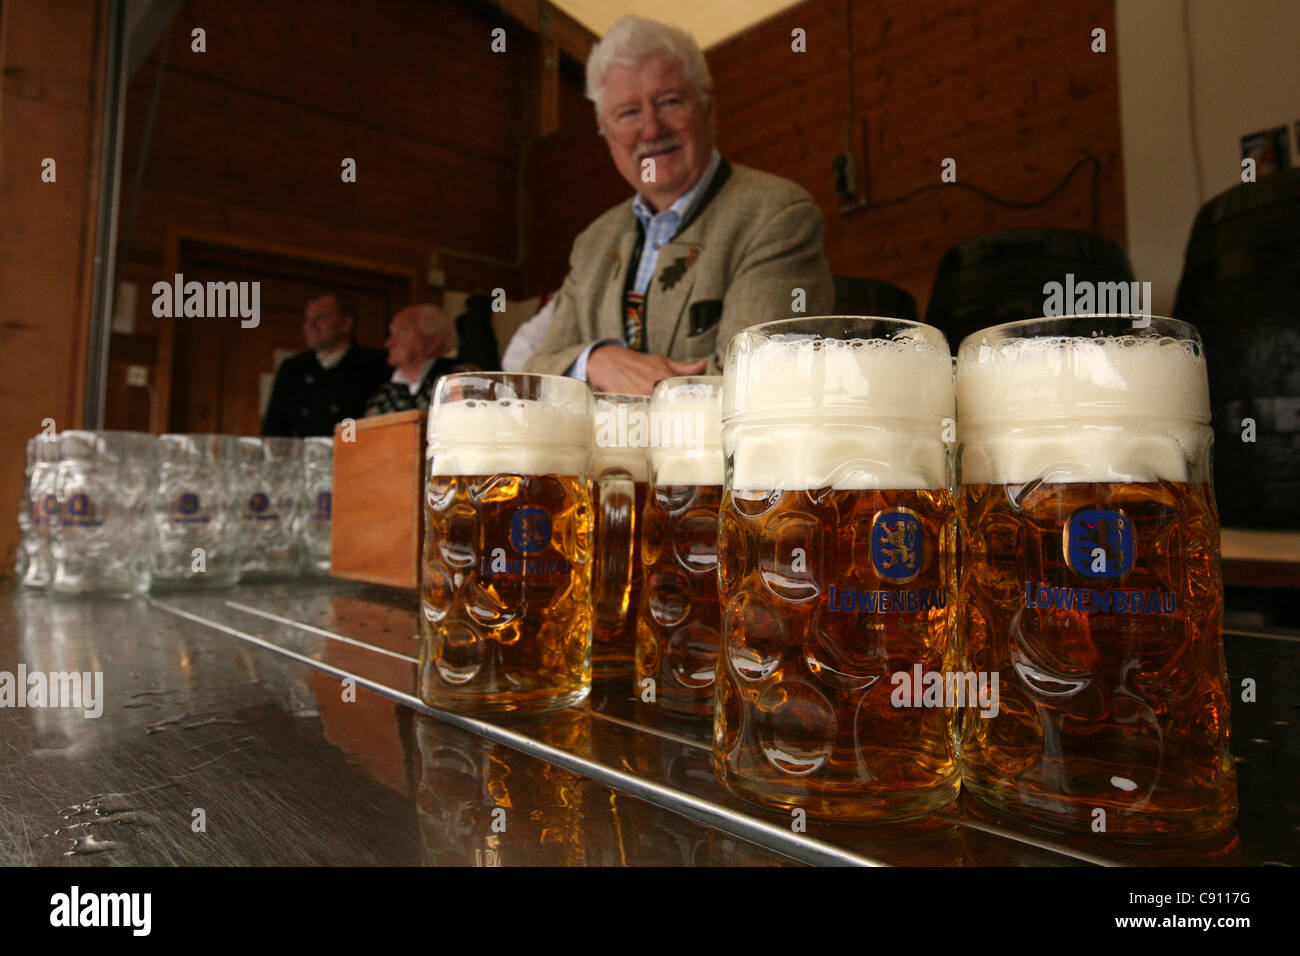 Barmen in the Lowenbrau Festhalle at the Oktoberfest Beer Festival in Munich, Germany. Stock Photo